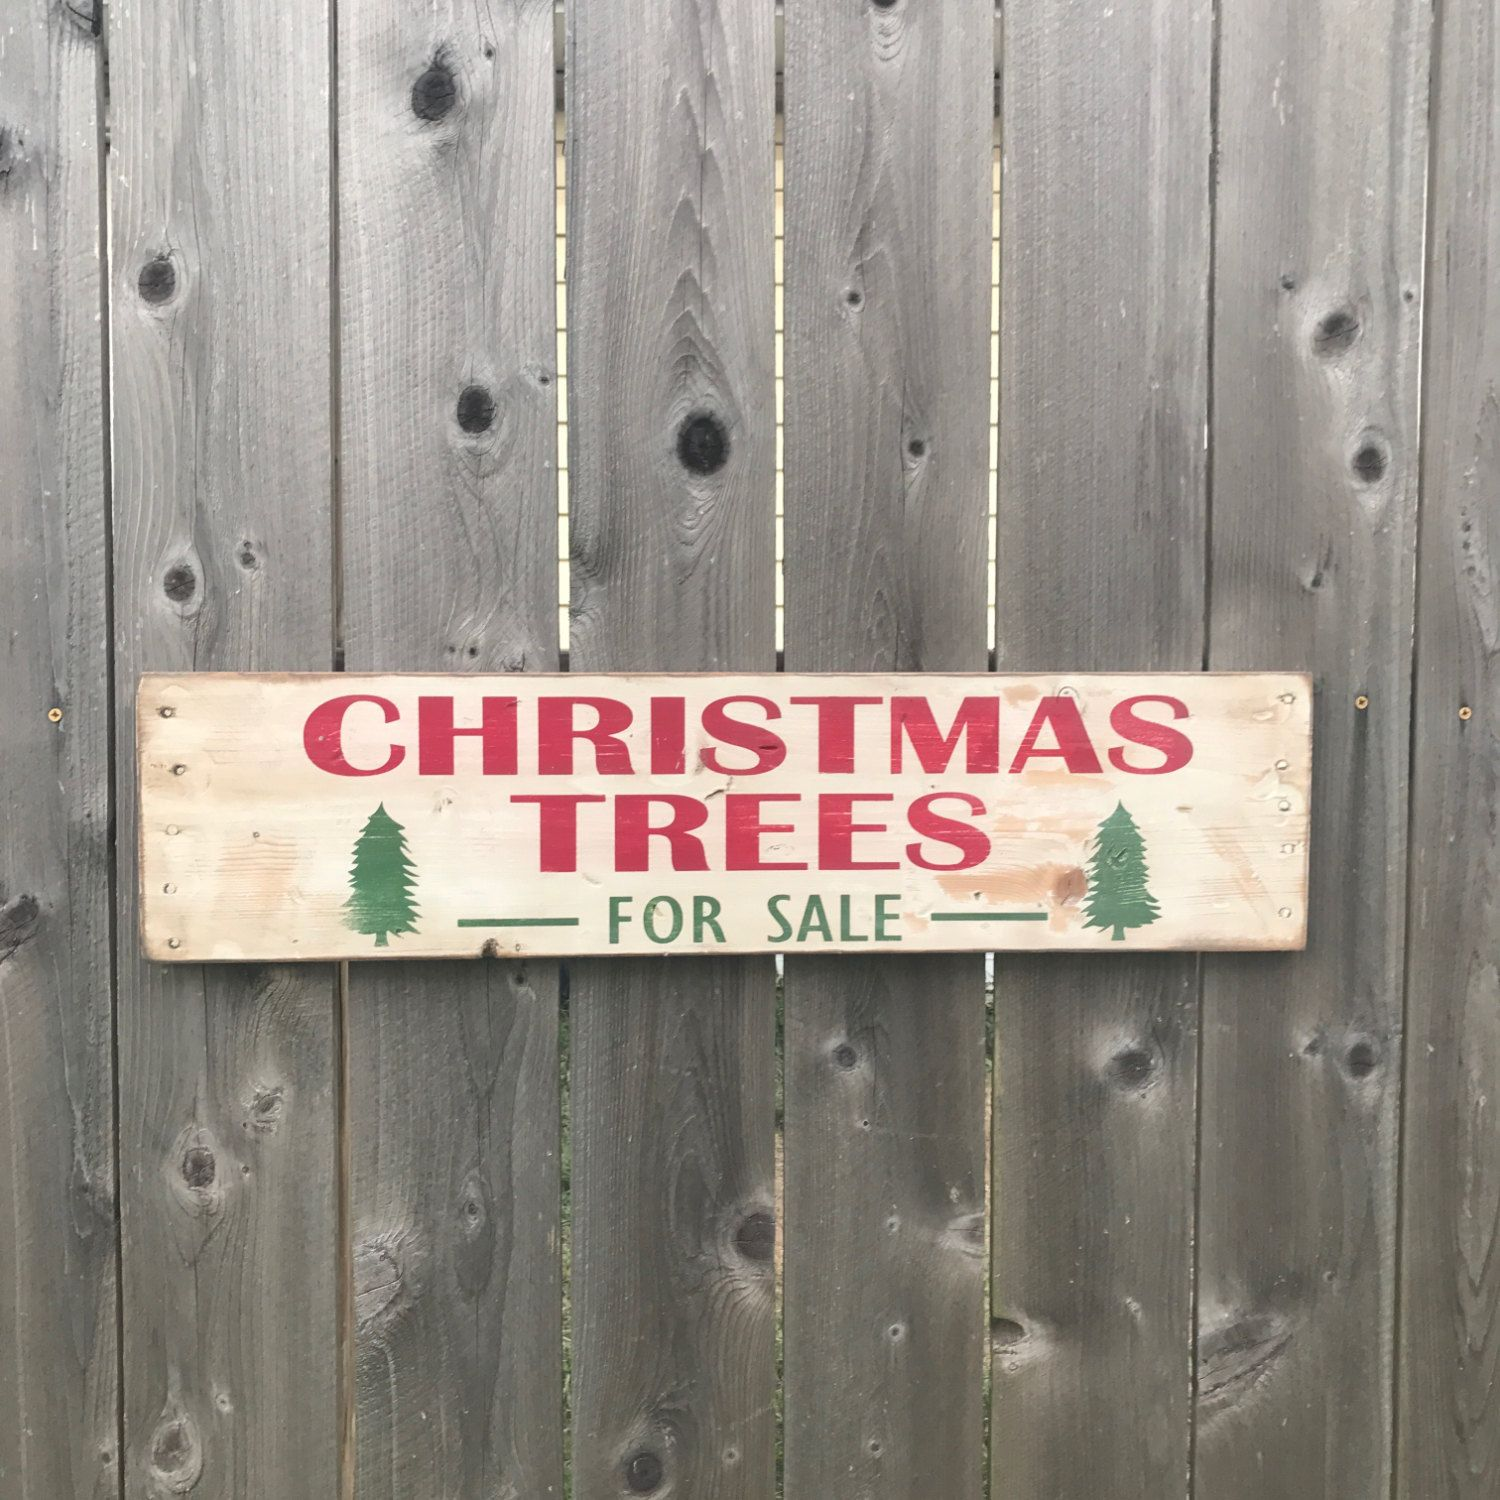 FixerUpper Christmas Trees For Sale Wood Sign / Rustic